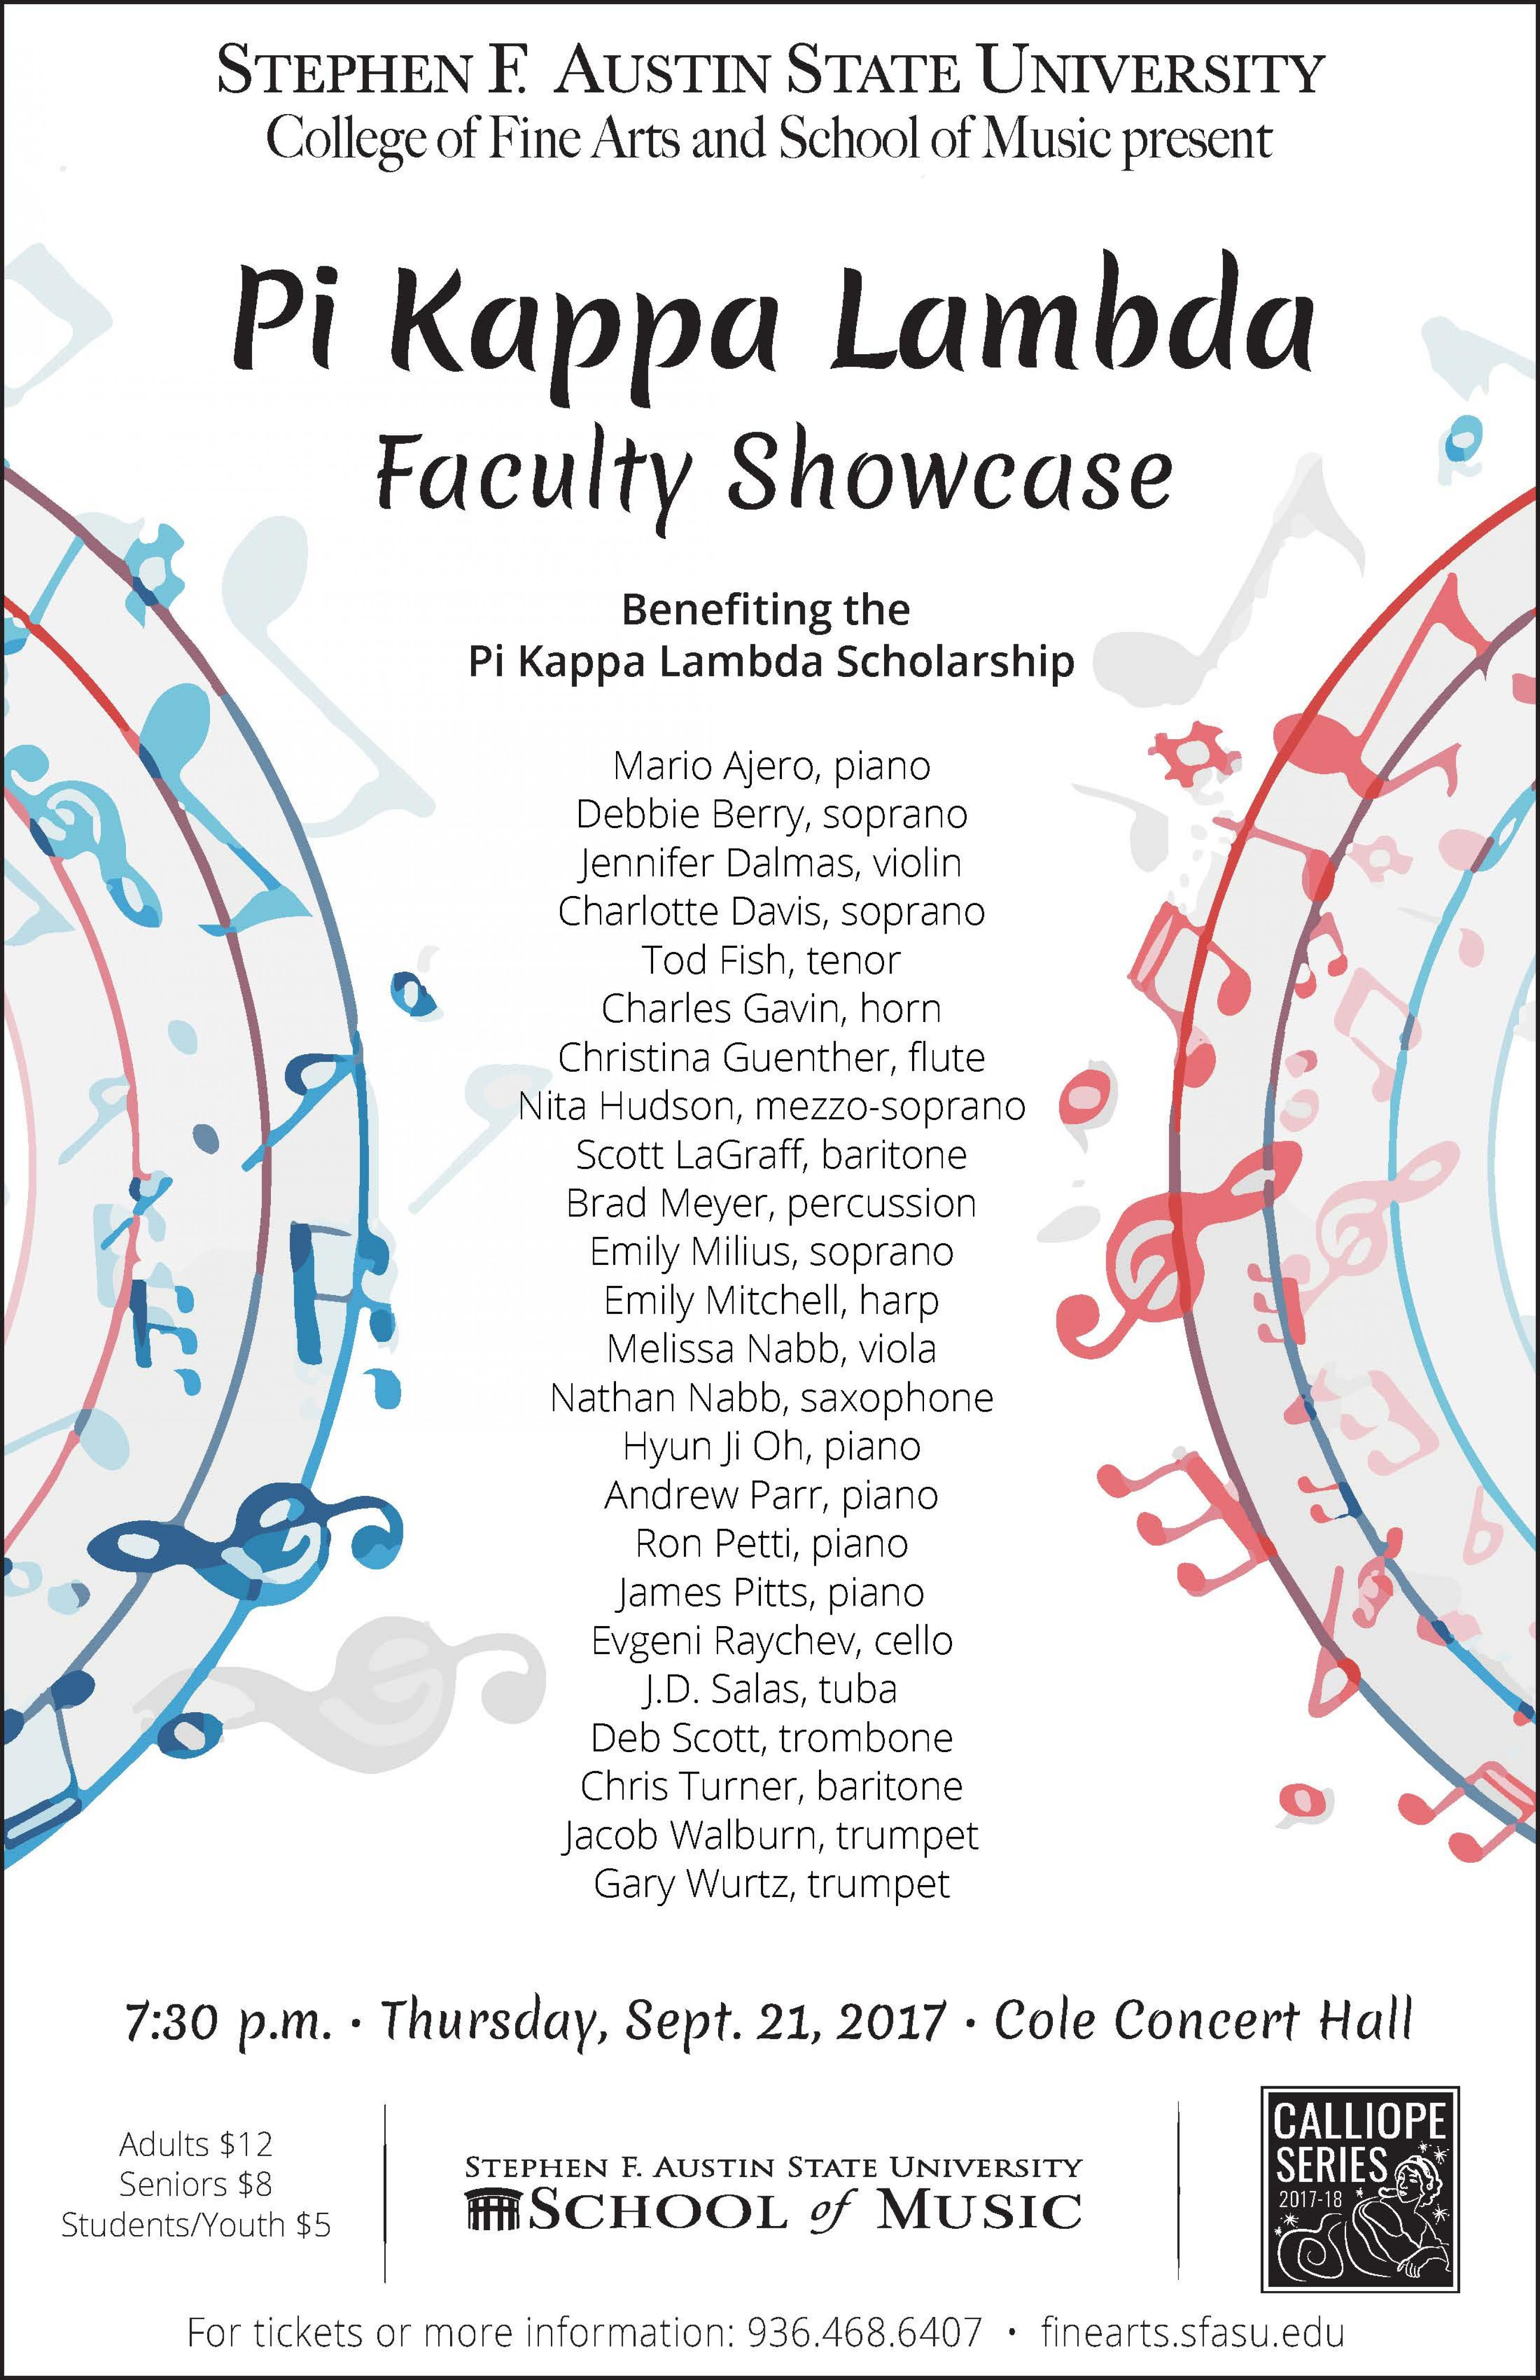 publicity image for Pi Kappa Lambda Faculty Showcase